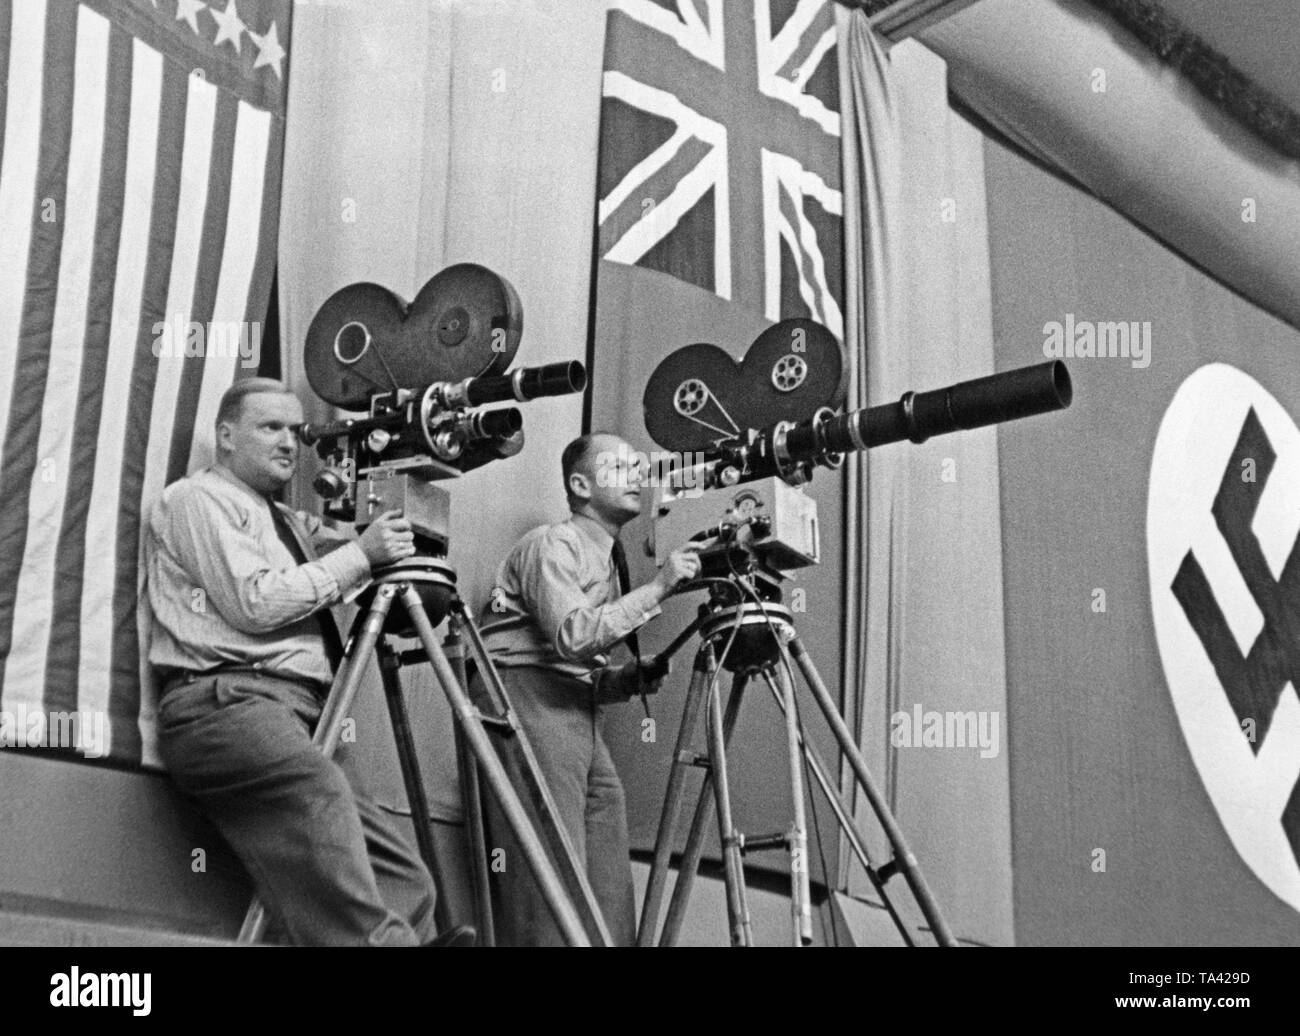 The cameramen Heinz Kluth and Bernhard Juppe shooting 'Der grosse Tag von Hamburg'. In the background, the swastika flag and the flag of Great Britain. - Stock Image